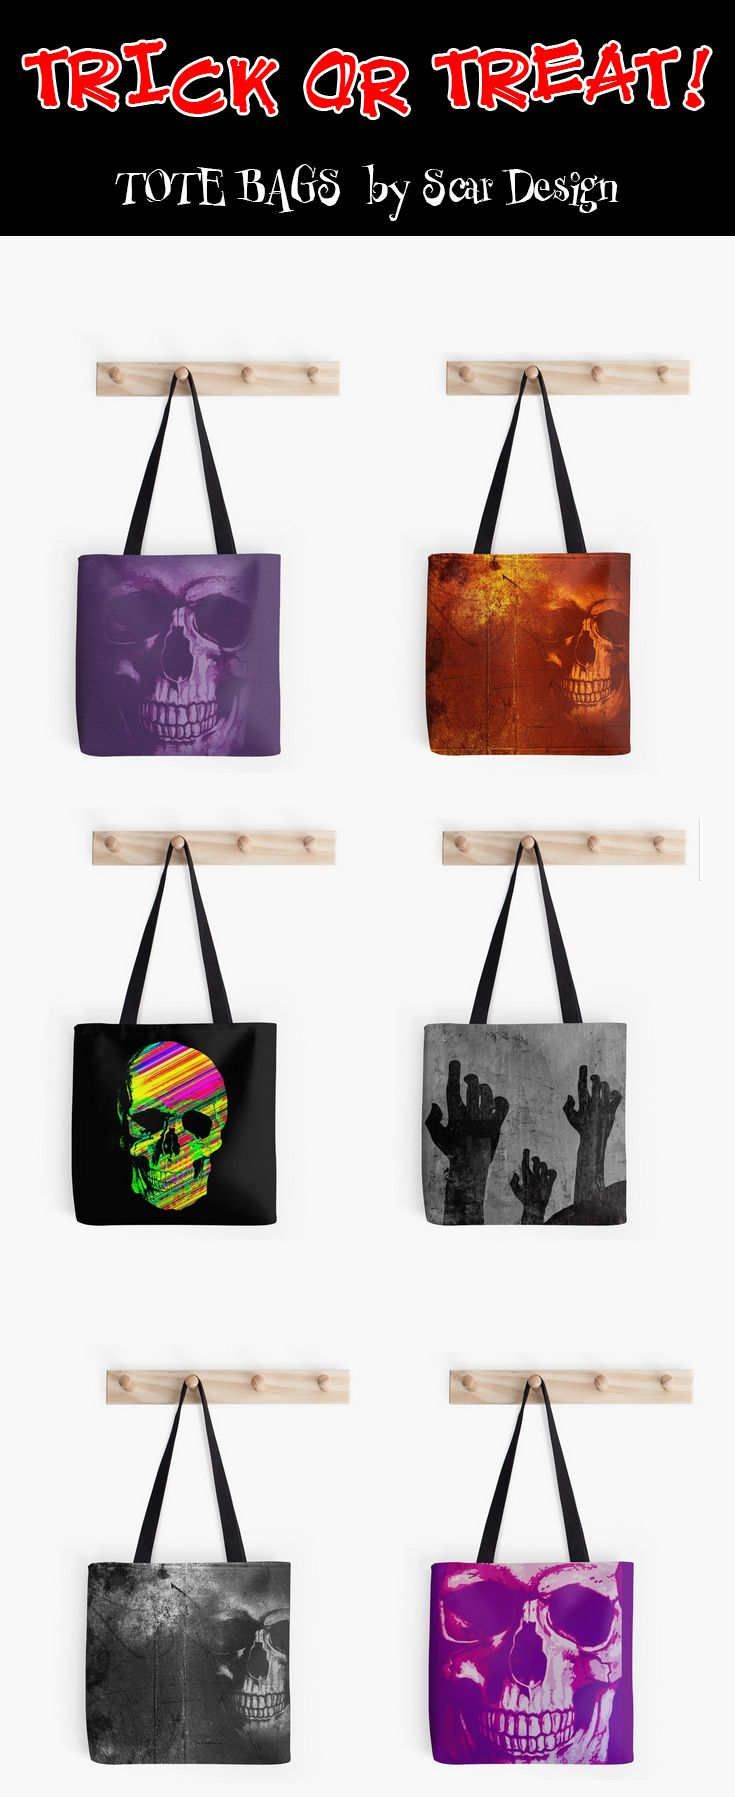 Halloween Tote  Bags by Scar Design. #halloween #trickortreat #skeletons #skulls #halloweengifts $skull #family #art #online #shopping #horror #scary #giftsforkids #skullbag #totebag #totebags #giftsforhim #giftsforher #39 #gifts #kids